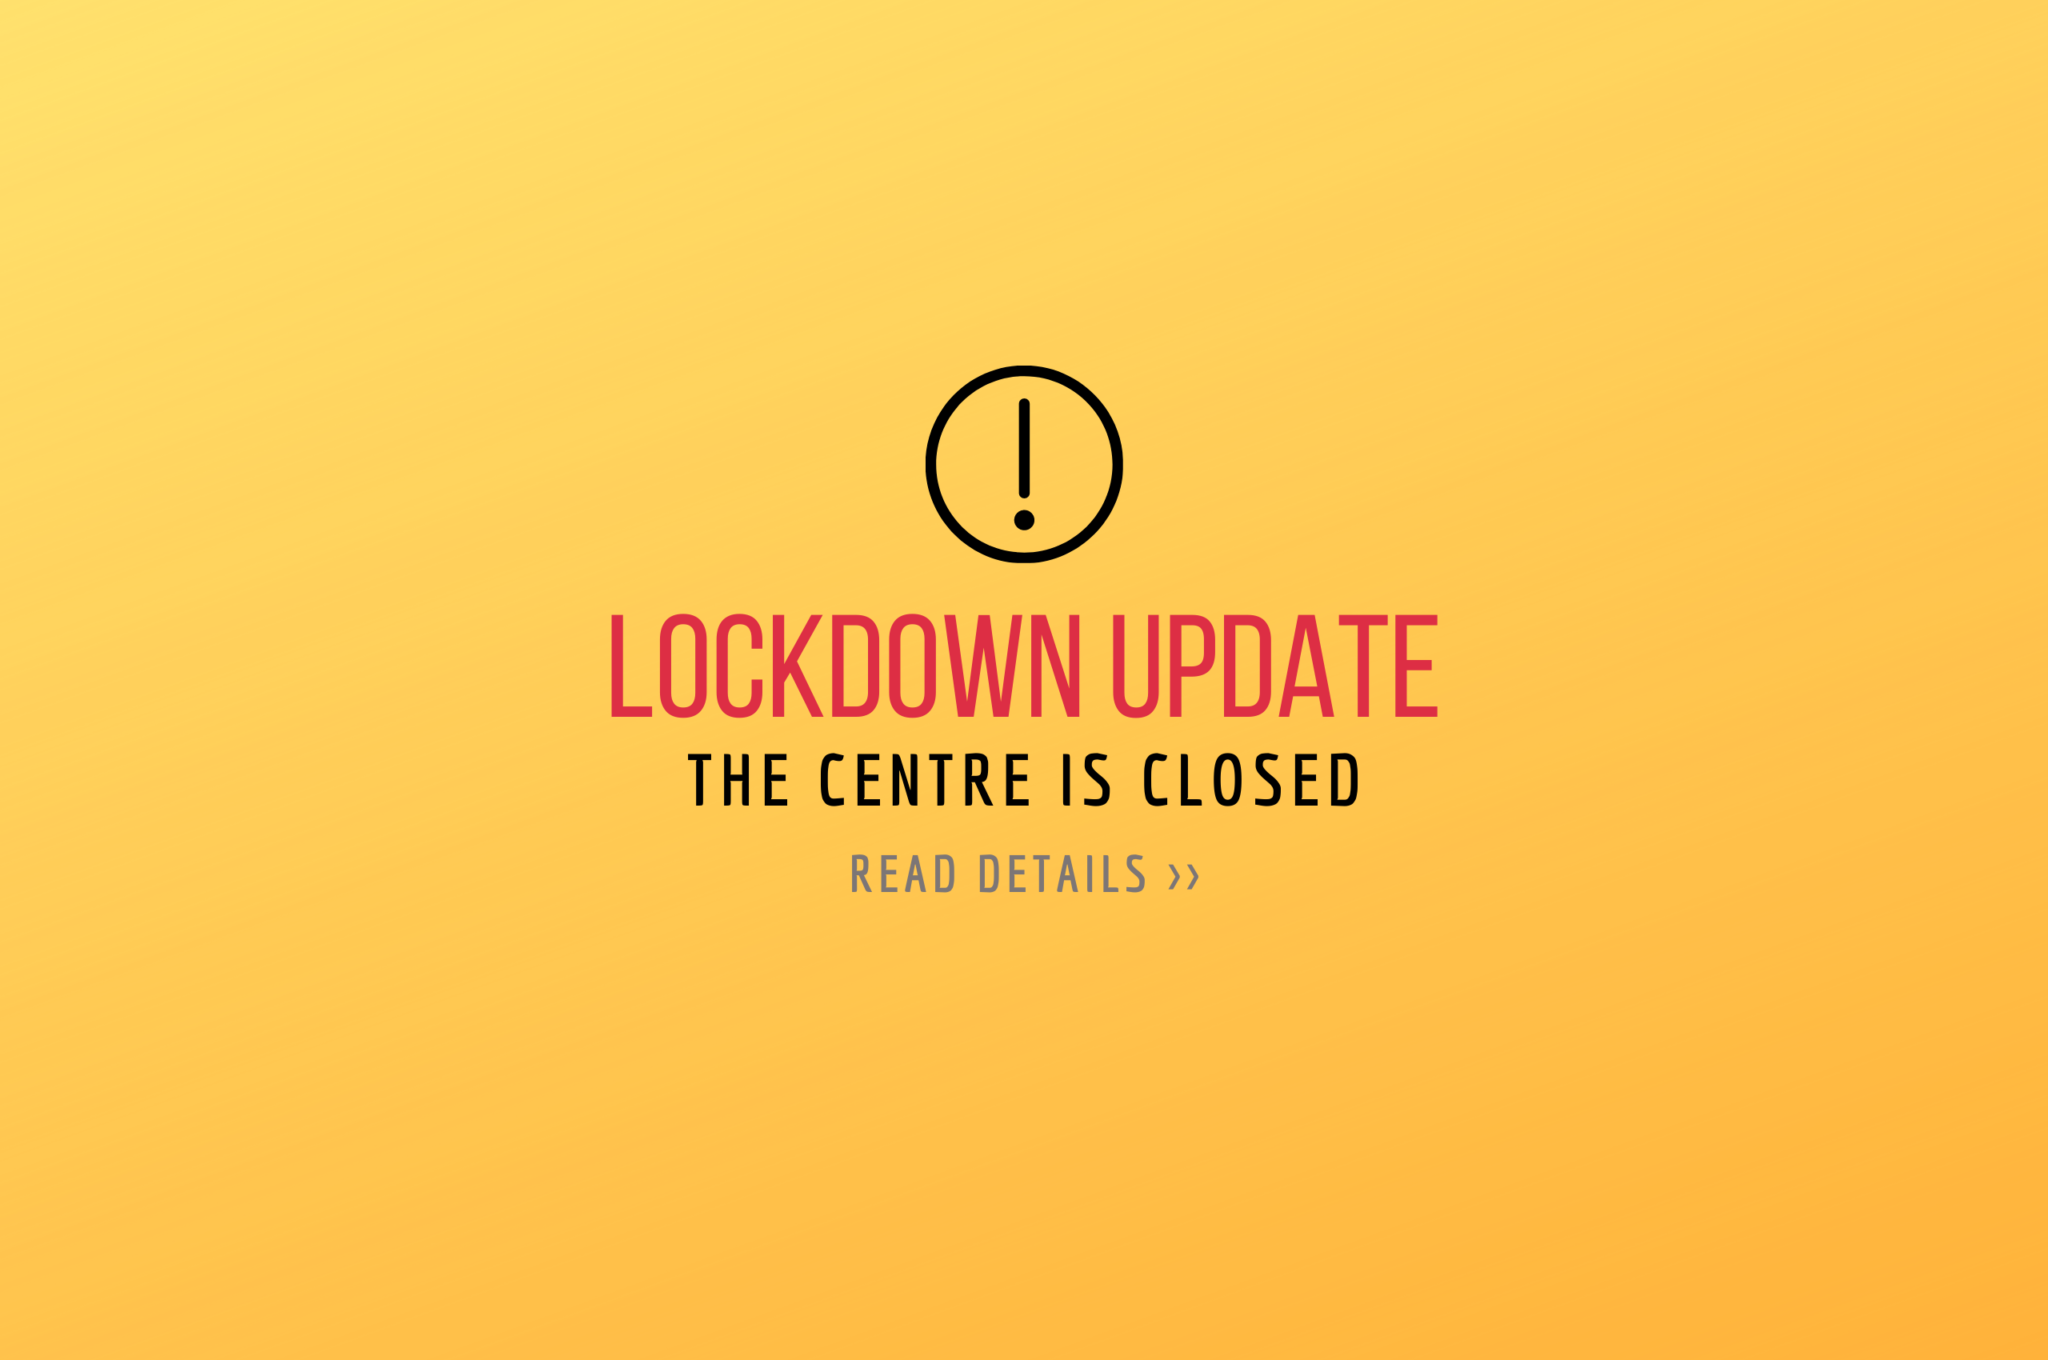 Lockdown update: the Centre is closed.